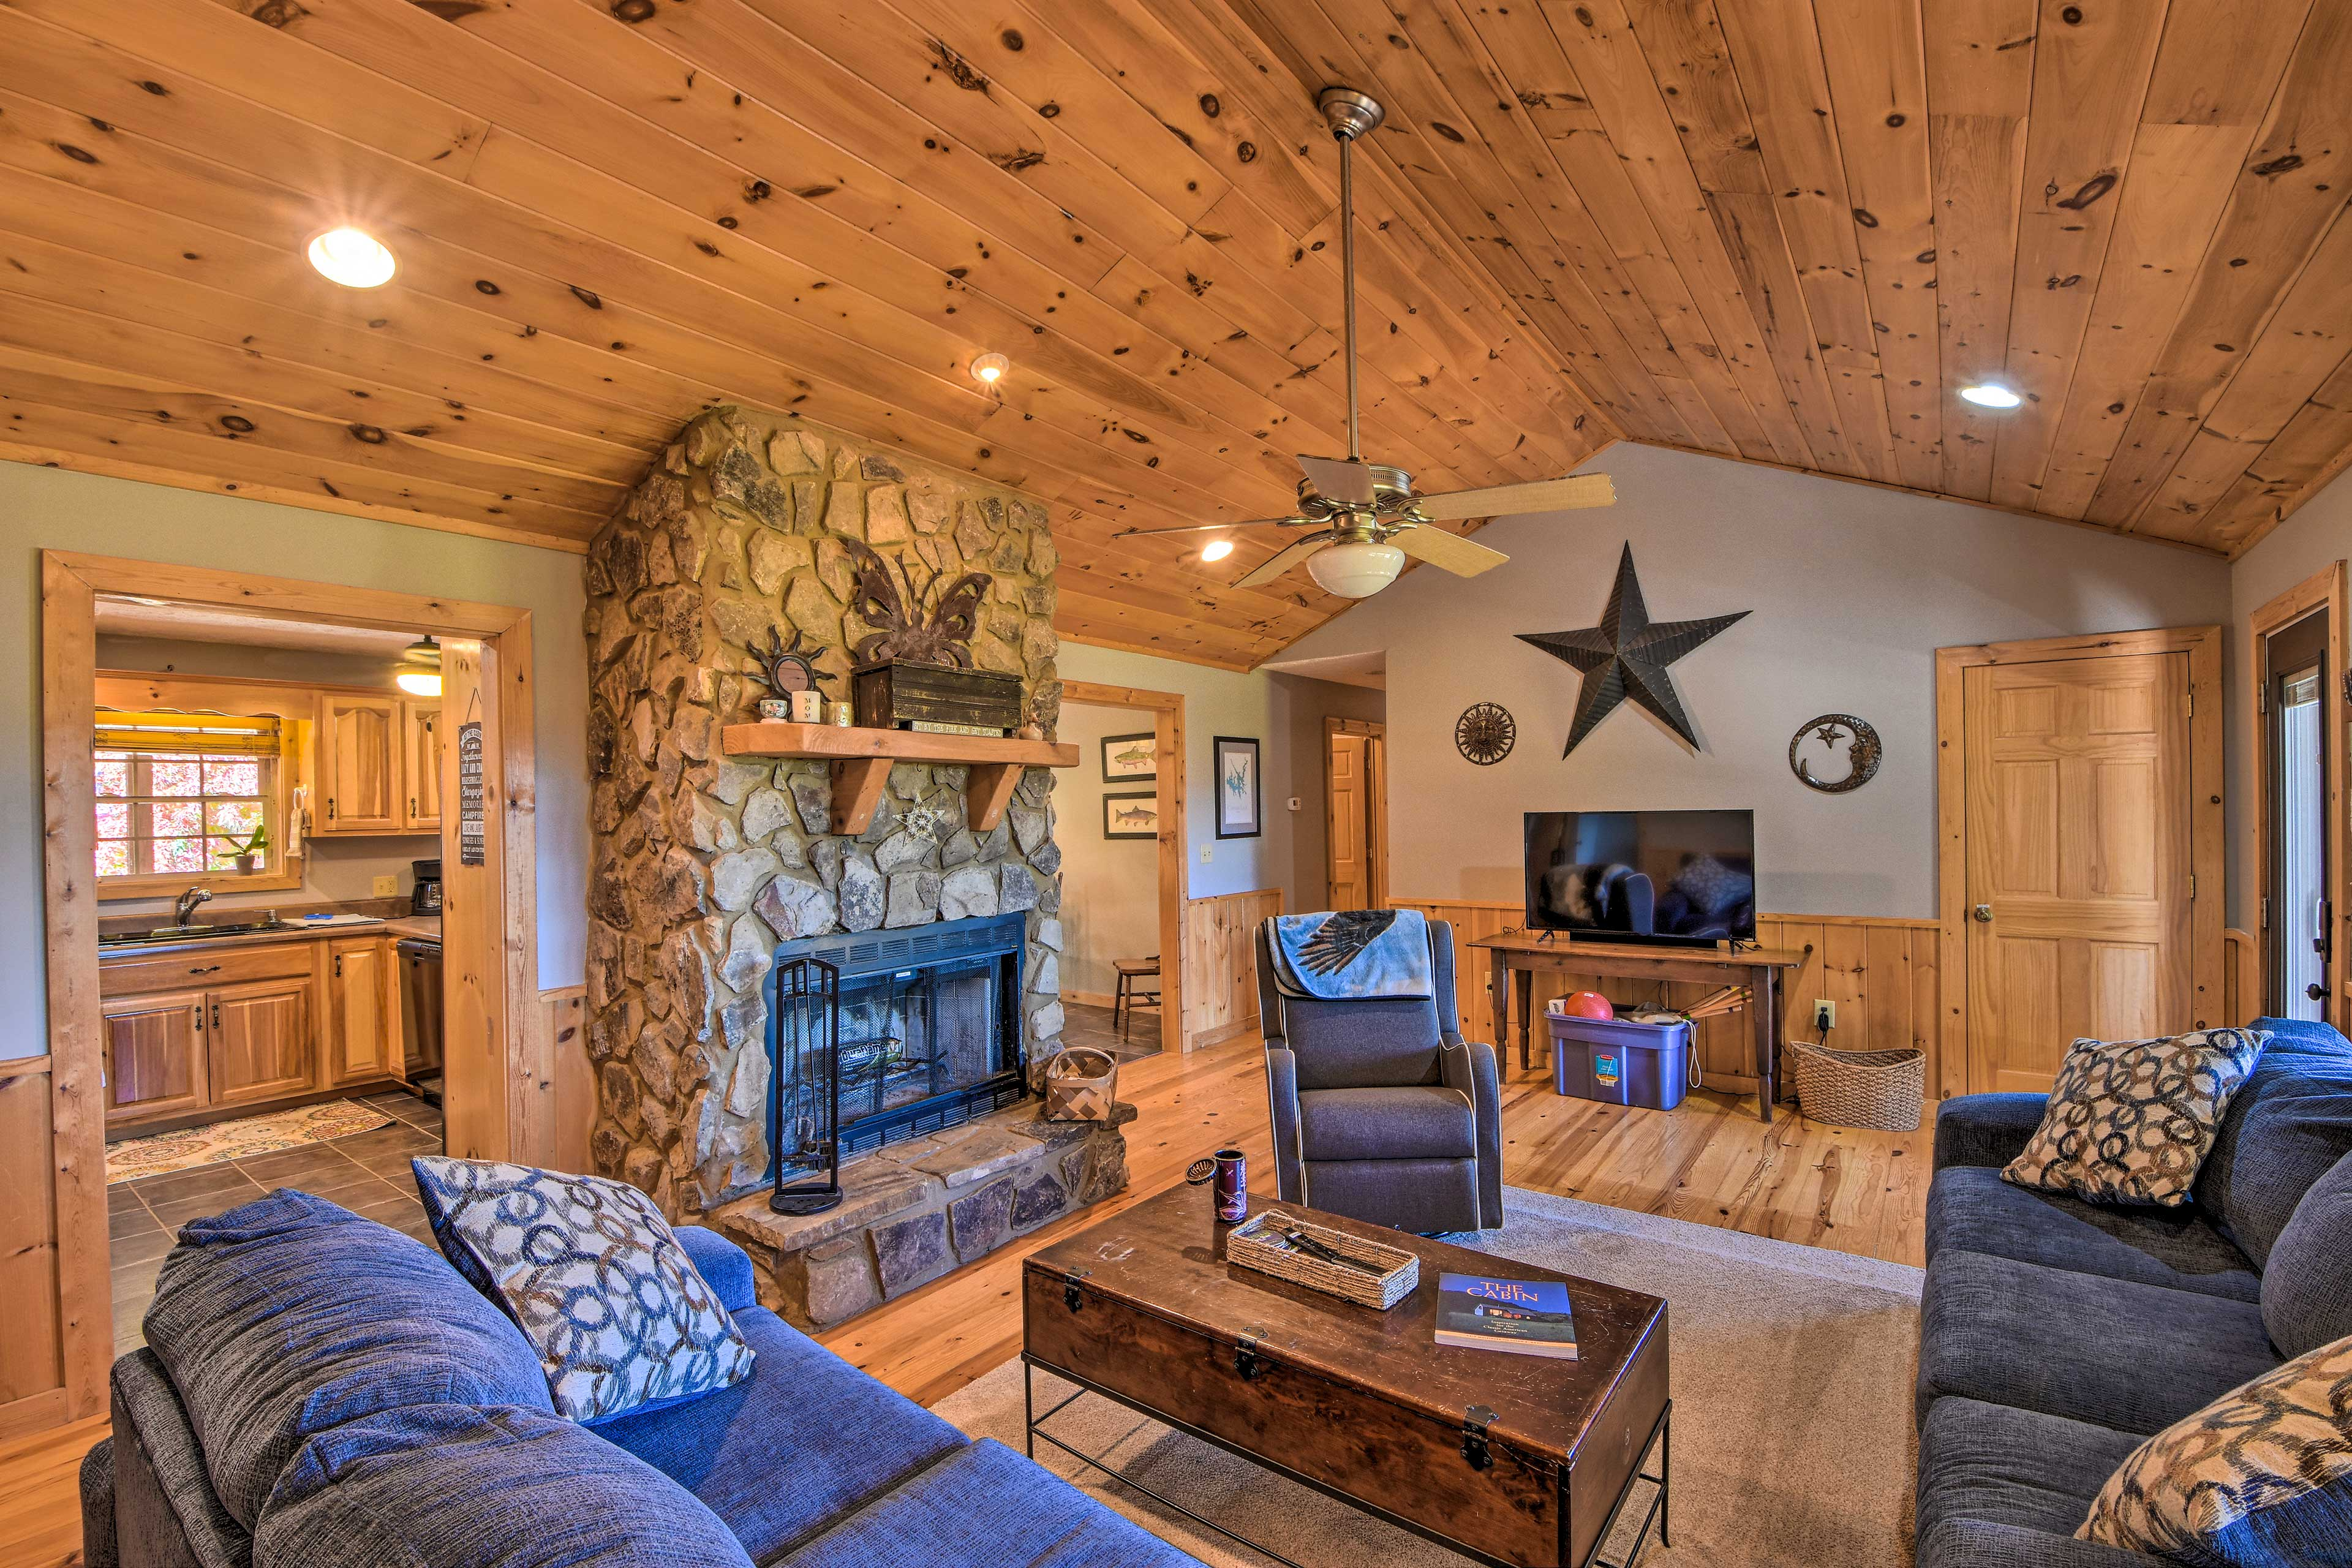 Cozy up inside this 3-bedroom, 2-bathroom vacation rental after your adventures.